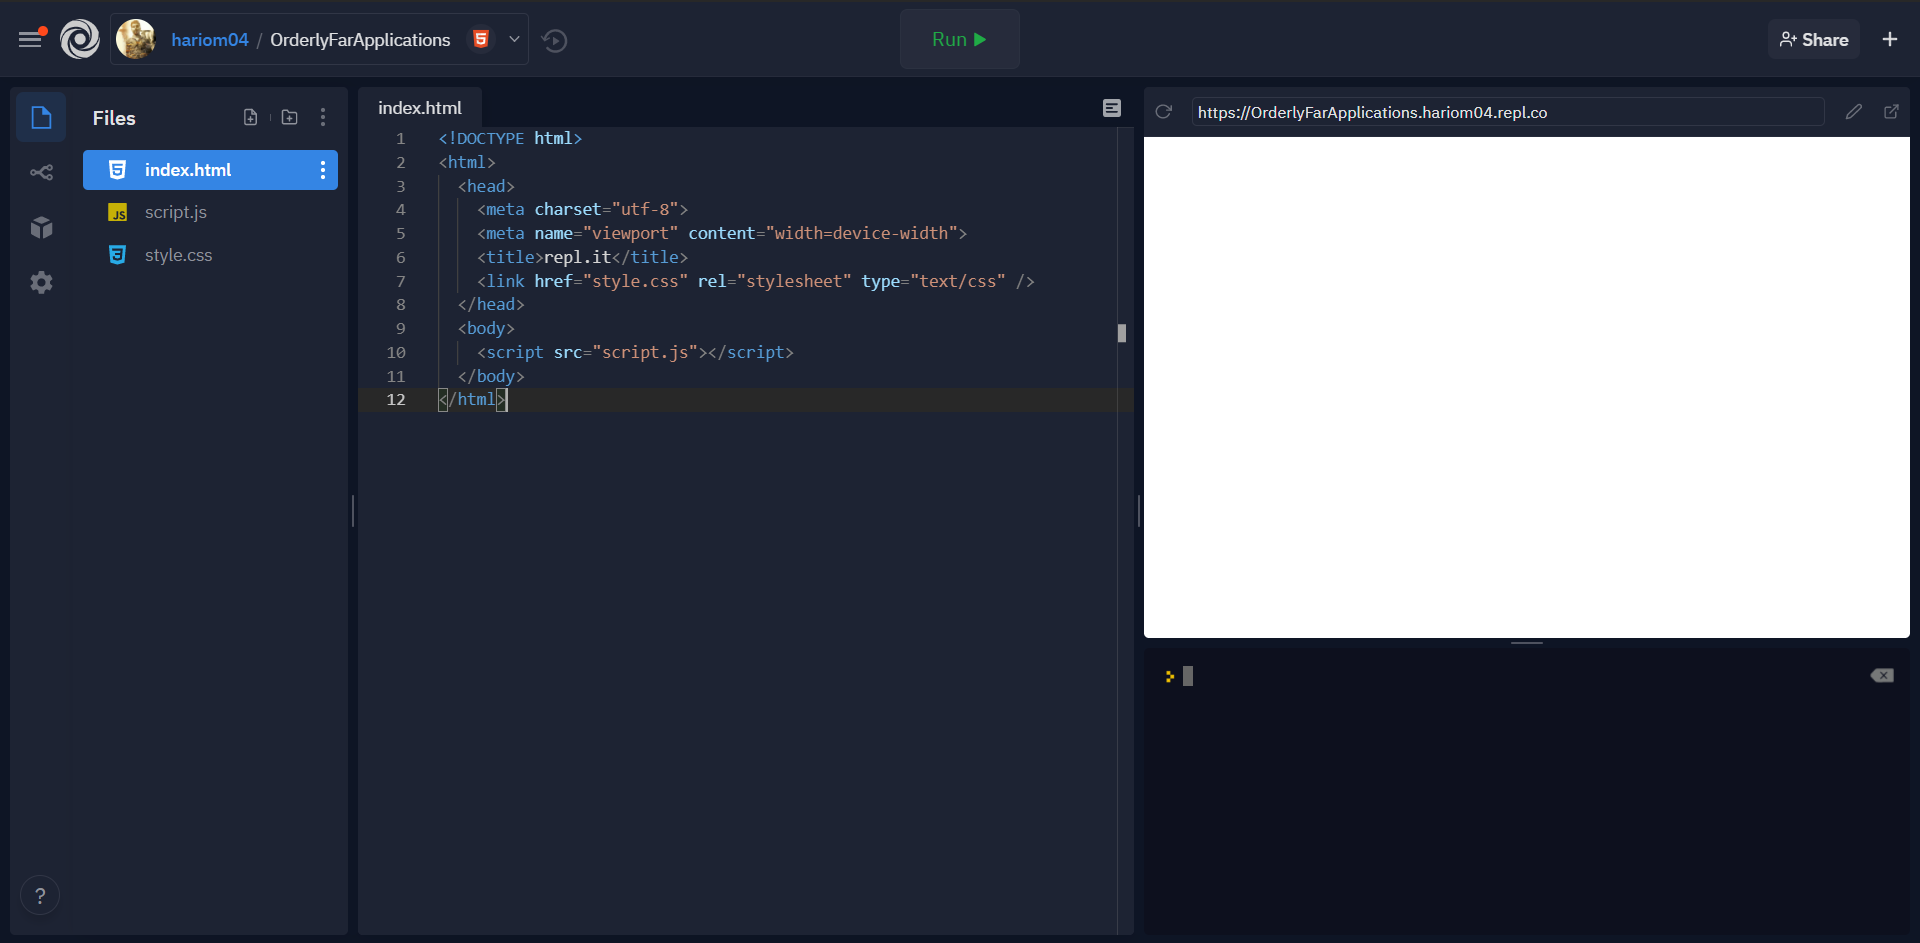 starting window of repl.it on navigating using above link